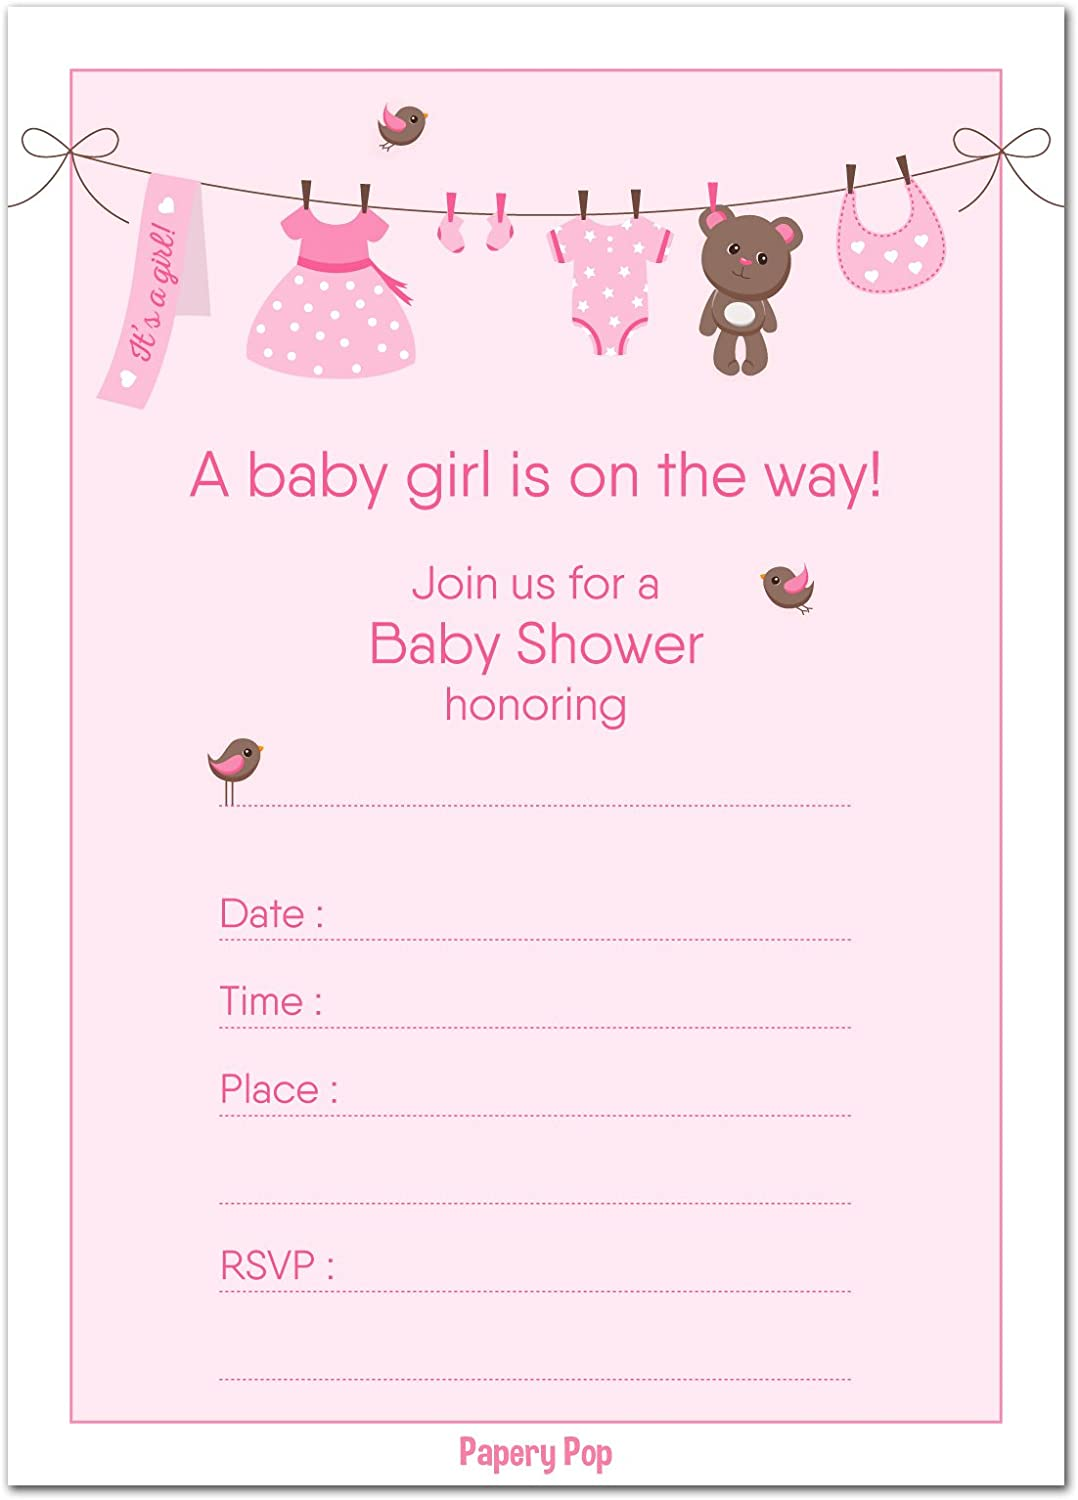 Amazon Com 30 Baby Shower Invitations Girl With Envelopes 30 Pack Baby Girl Shower Invite Cards Fits Perfectly With Pink Baby Shower Decorations And Supplies For Girls Toys Games